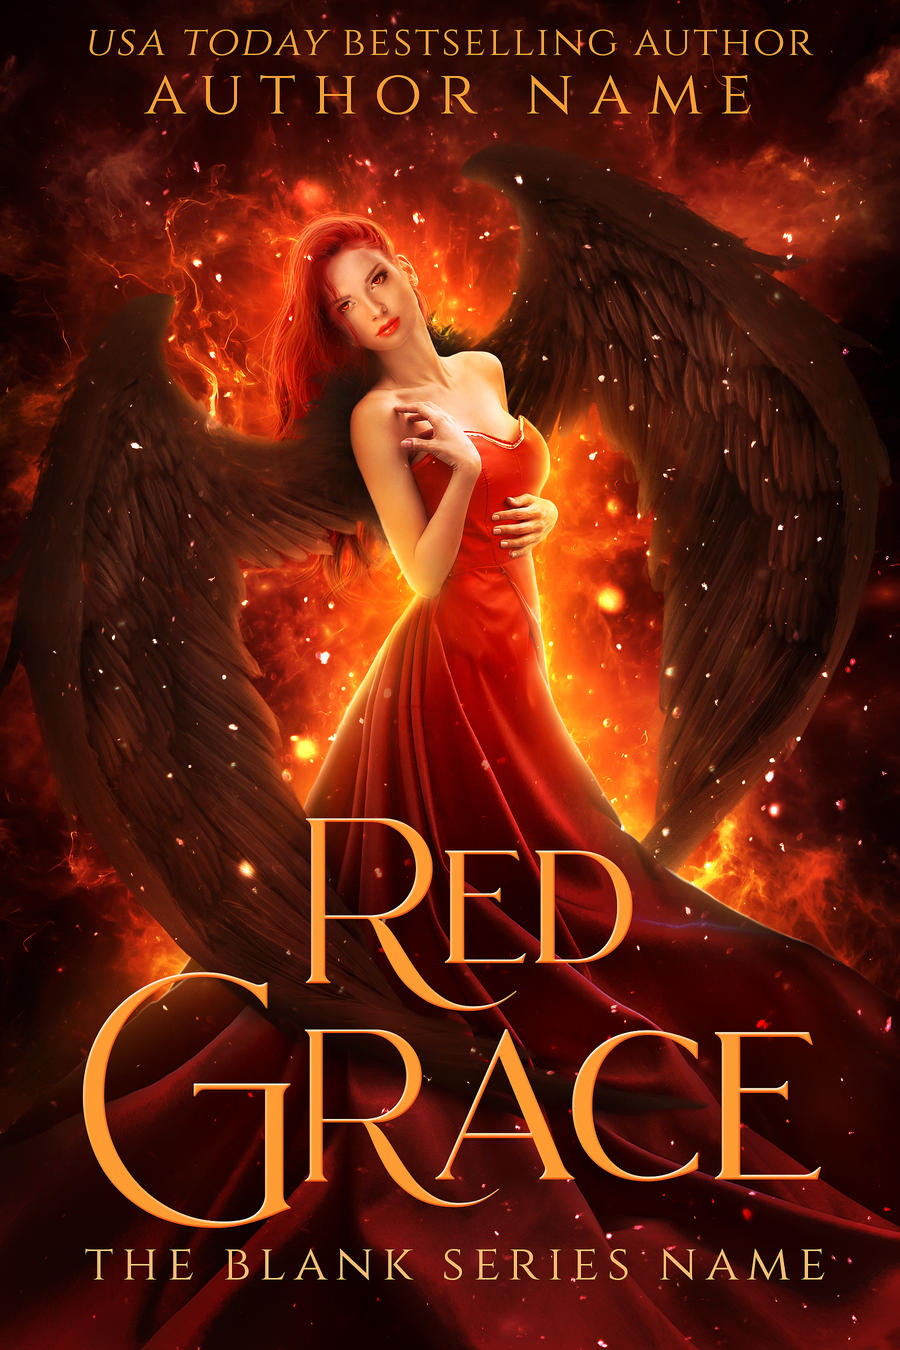 RED GRACE premade book cover